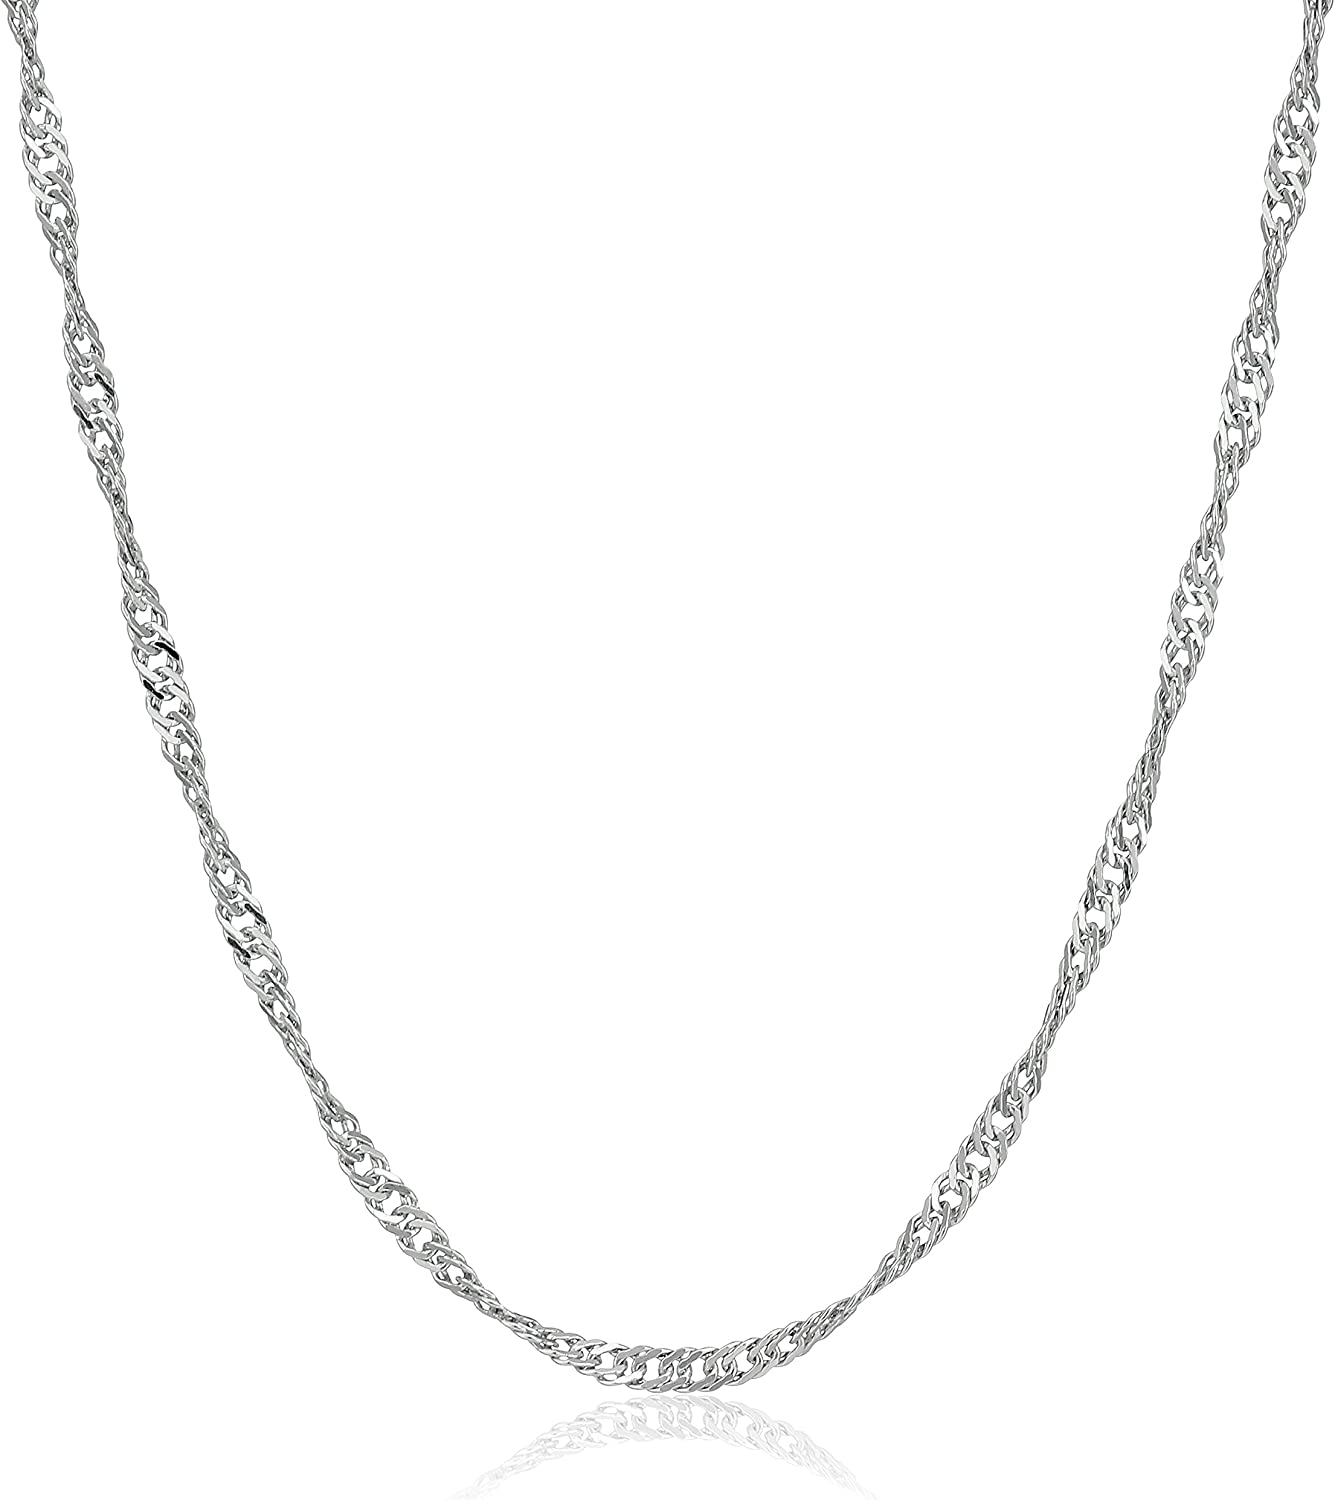 Amazon Com Sterling Silver Italian 1 4 Mm Singapore Chain Necklace 18 Jewelry